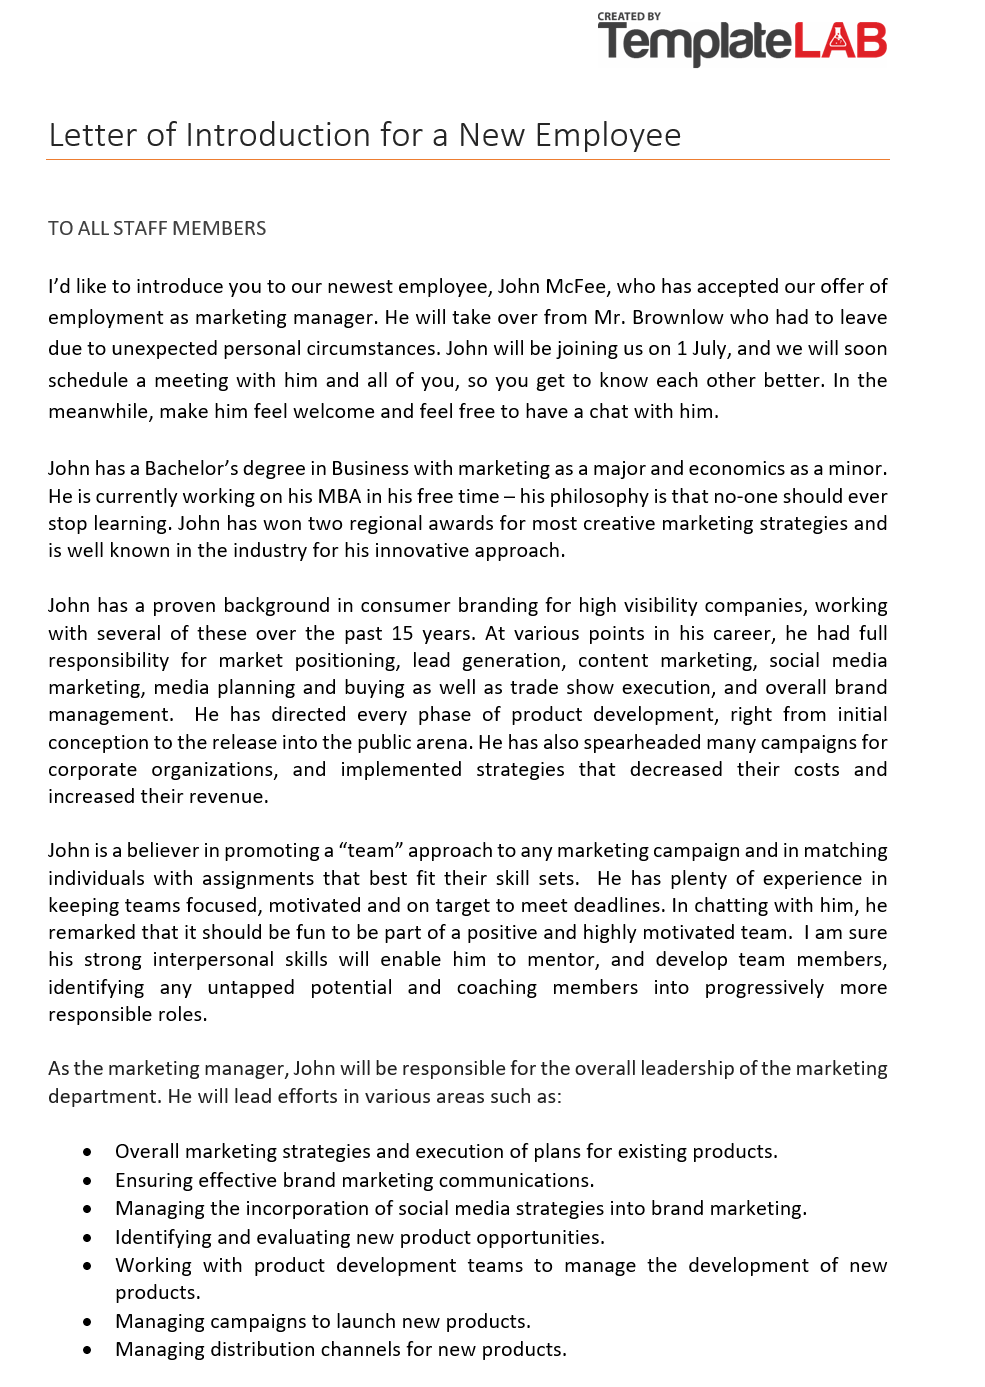 Free Letter of Introduction for a New Employee 2